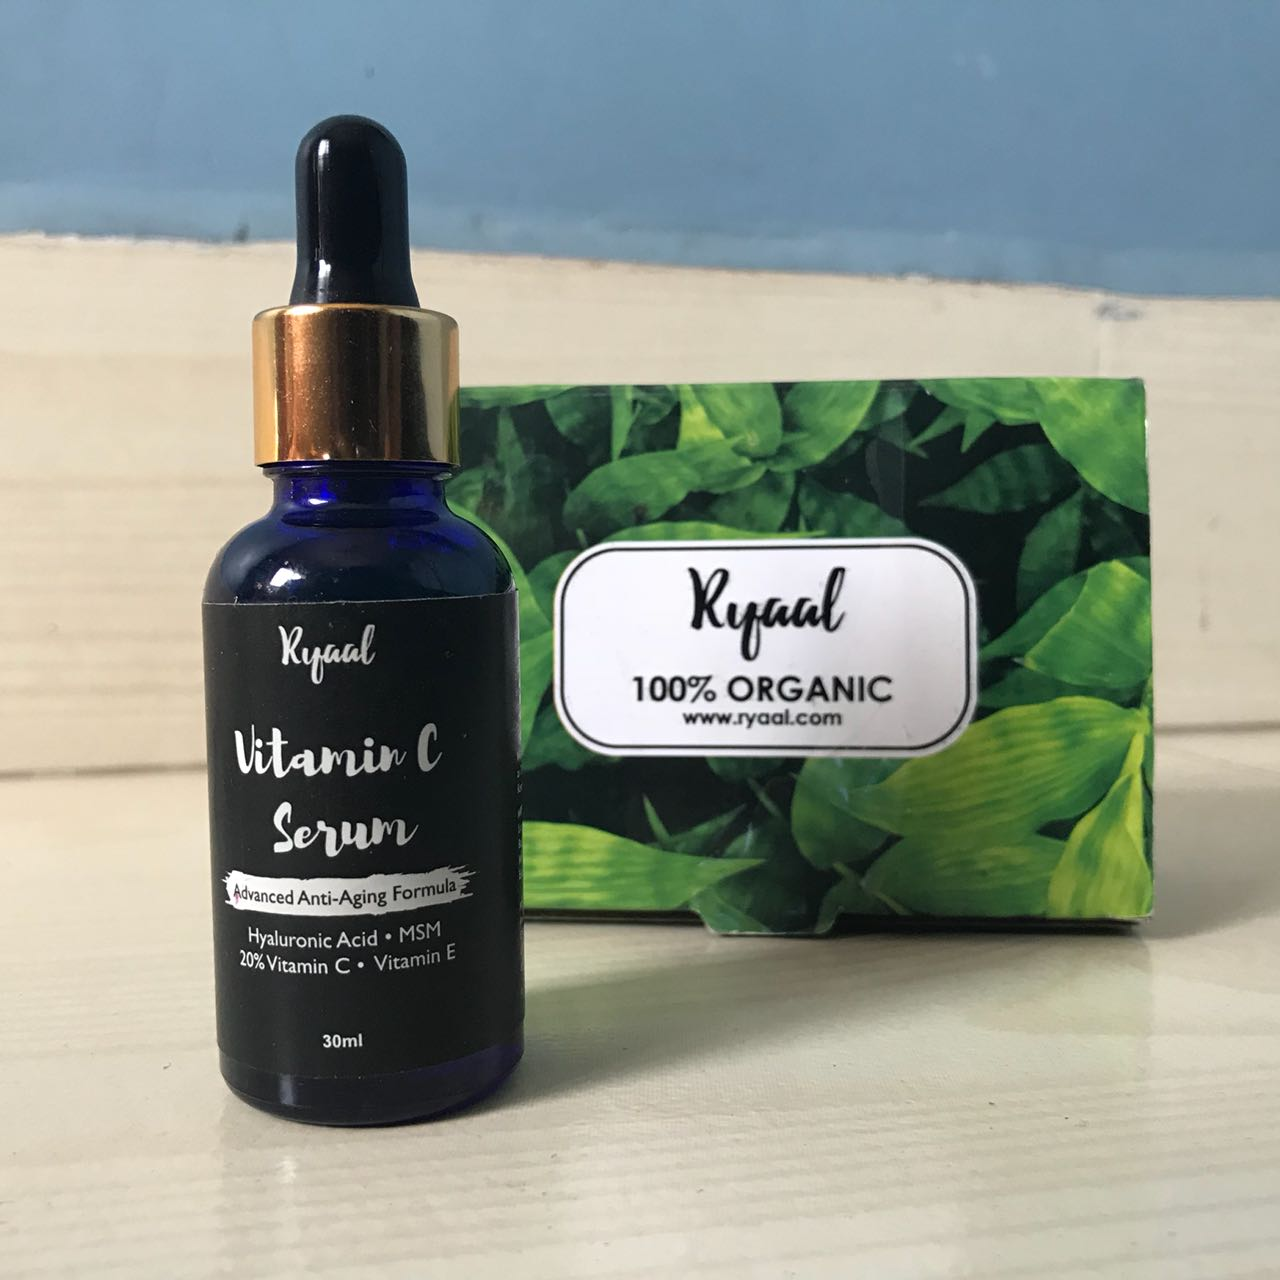 Ryaal Vitamin C Anti-Aging Serum Review